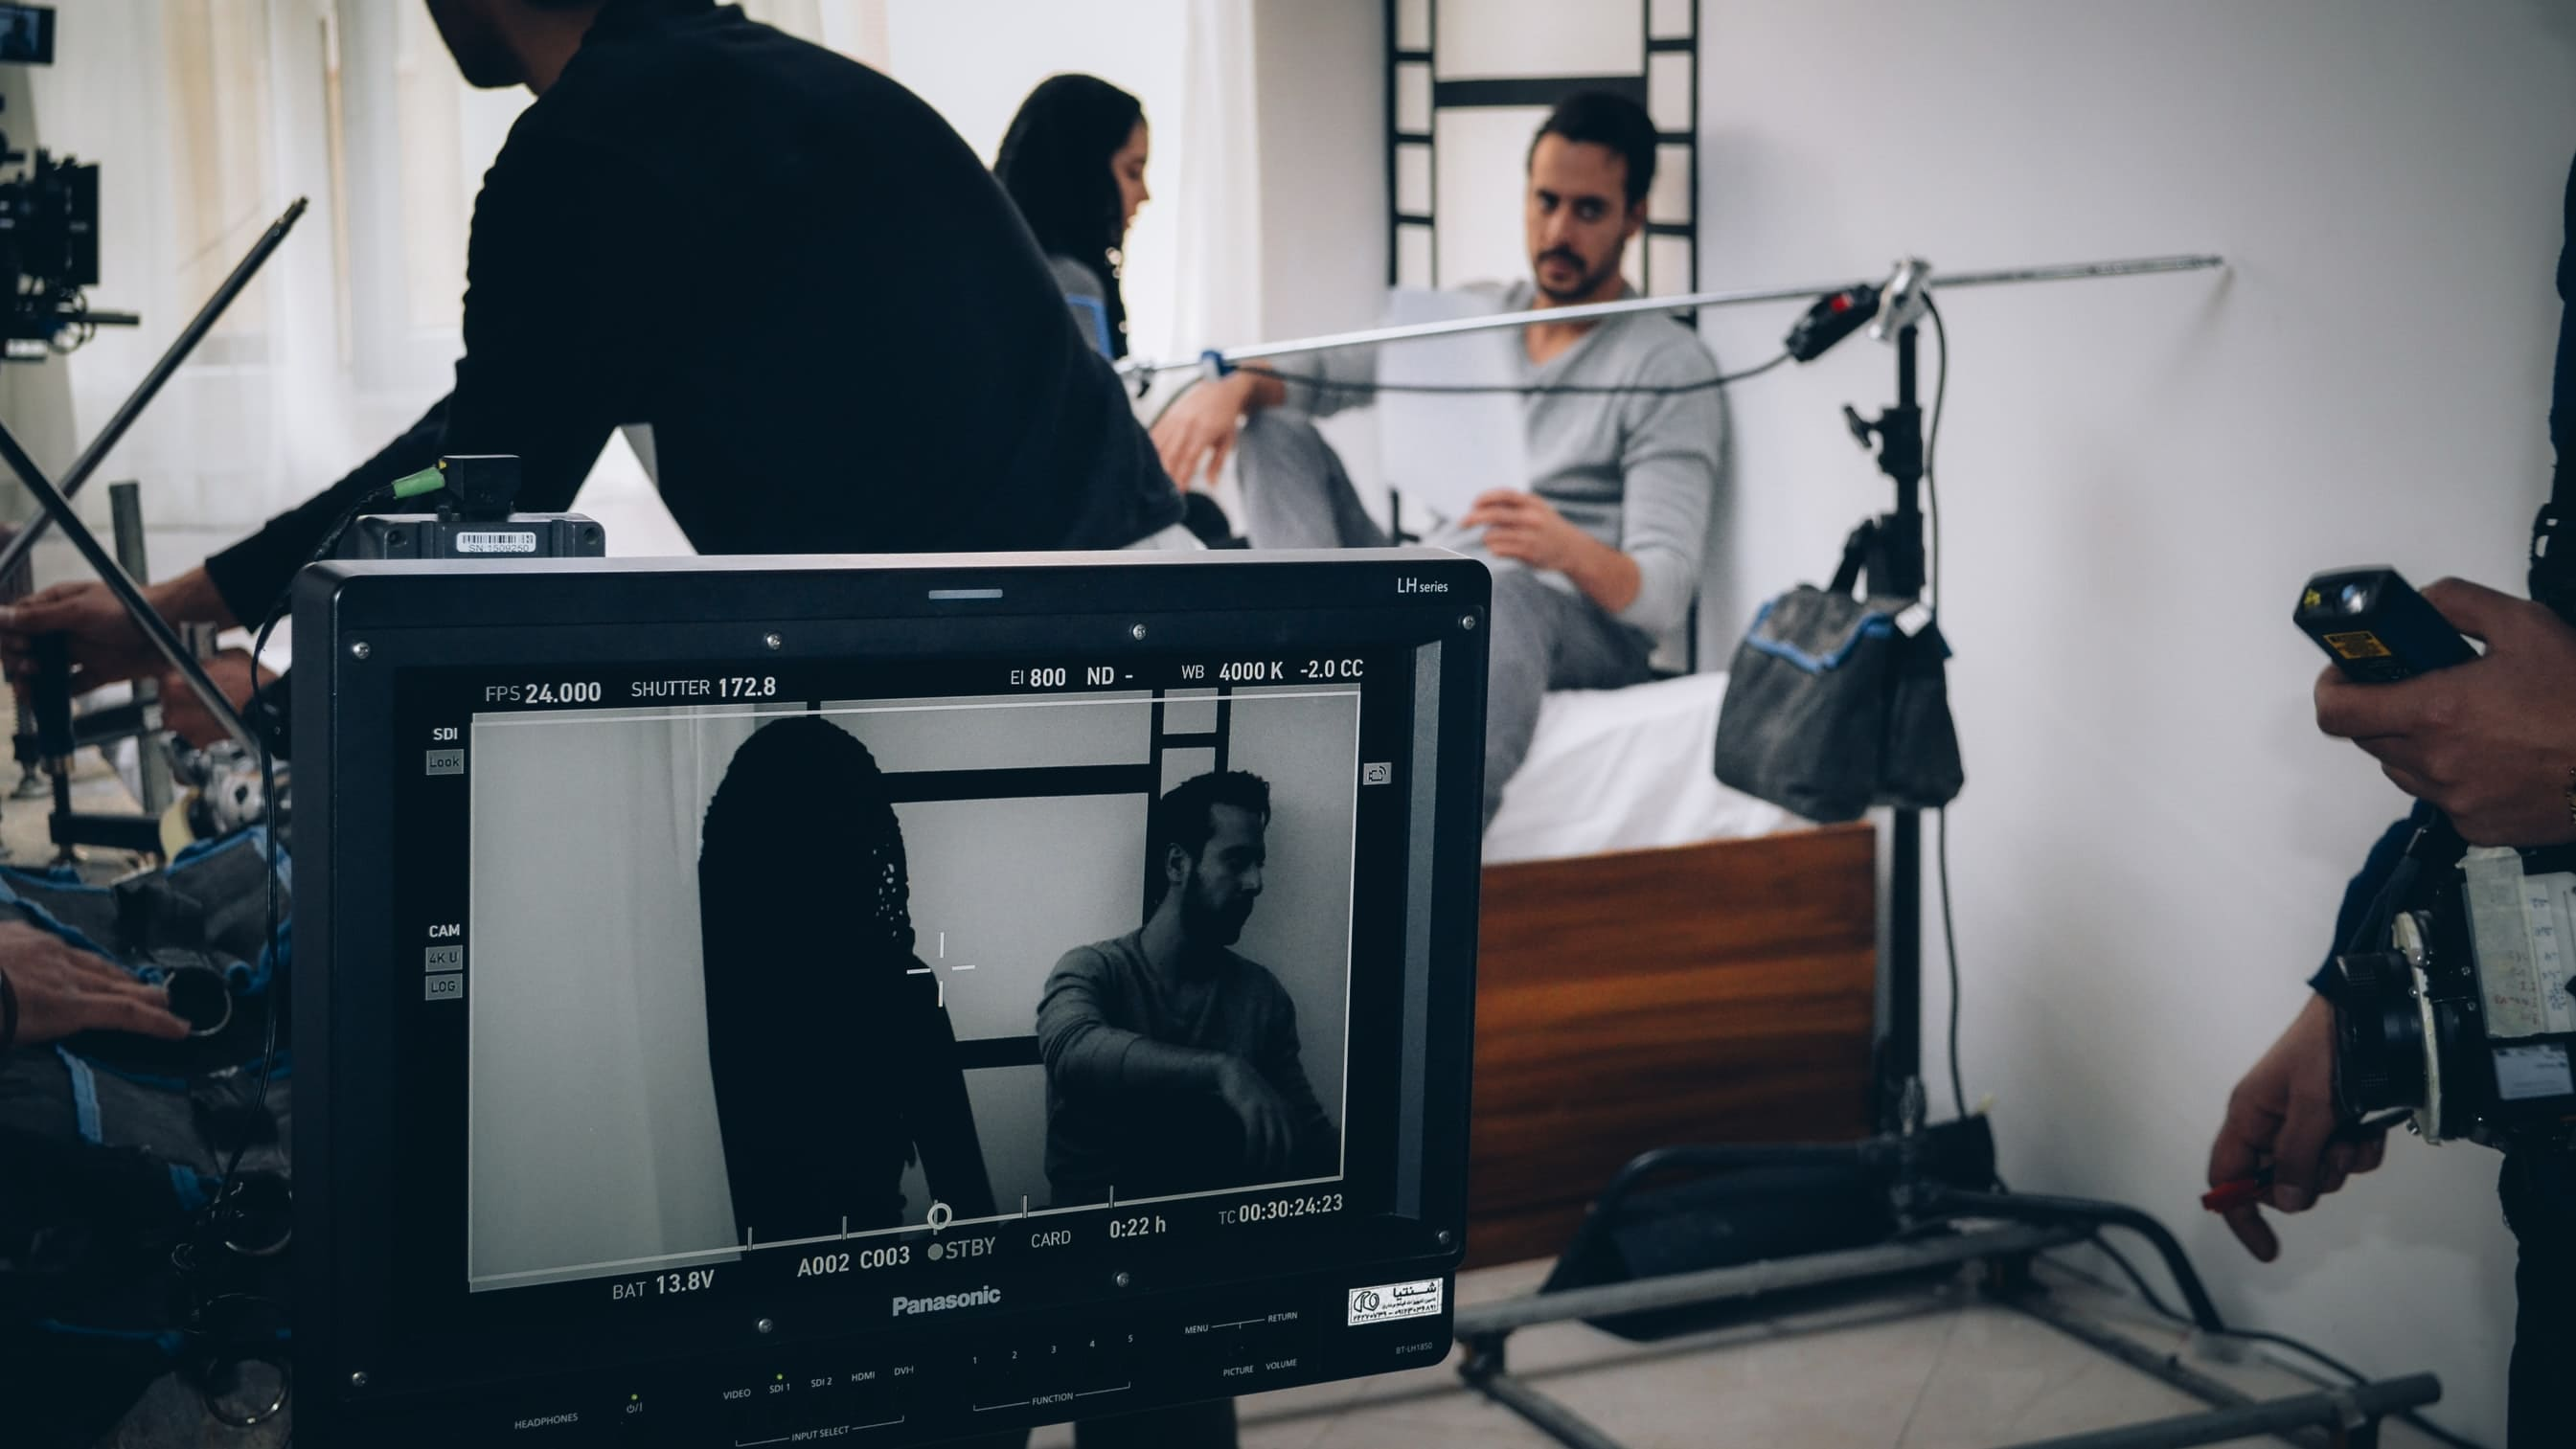 Most Popular Trends in Corporate Video Production